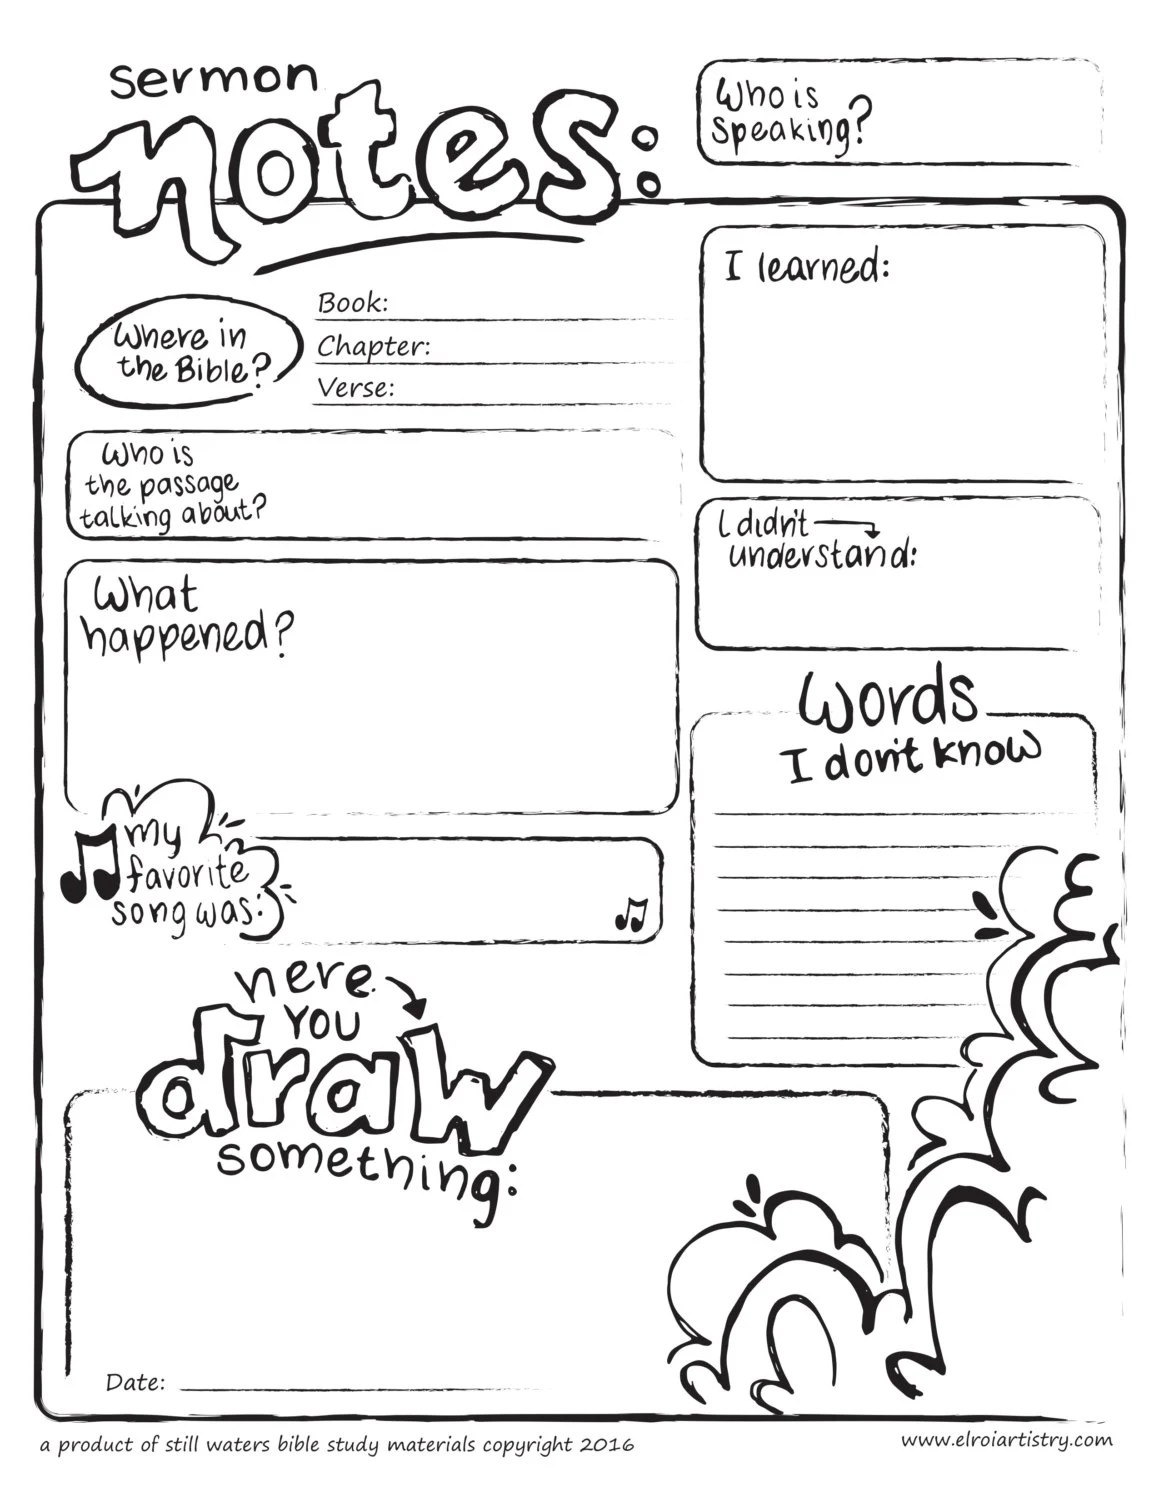 Bulliten Insert Kids Sermon Notes Printable Church Edition